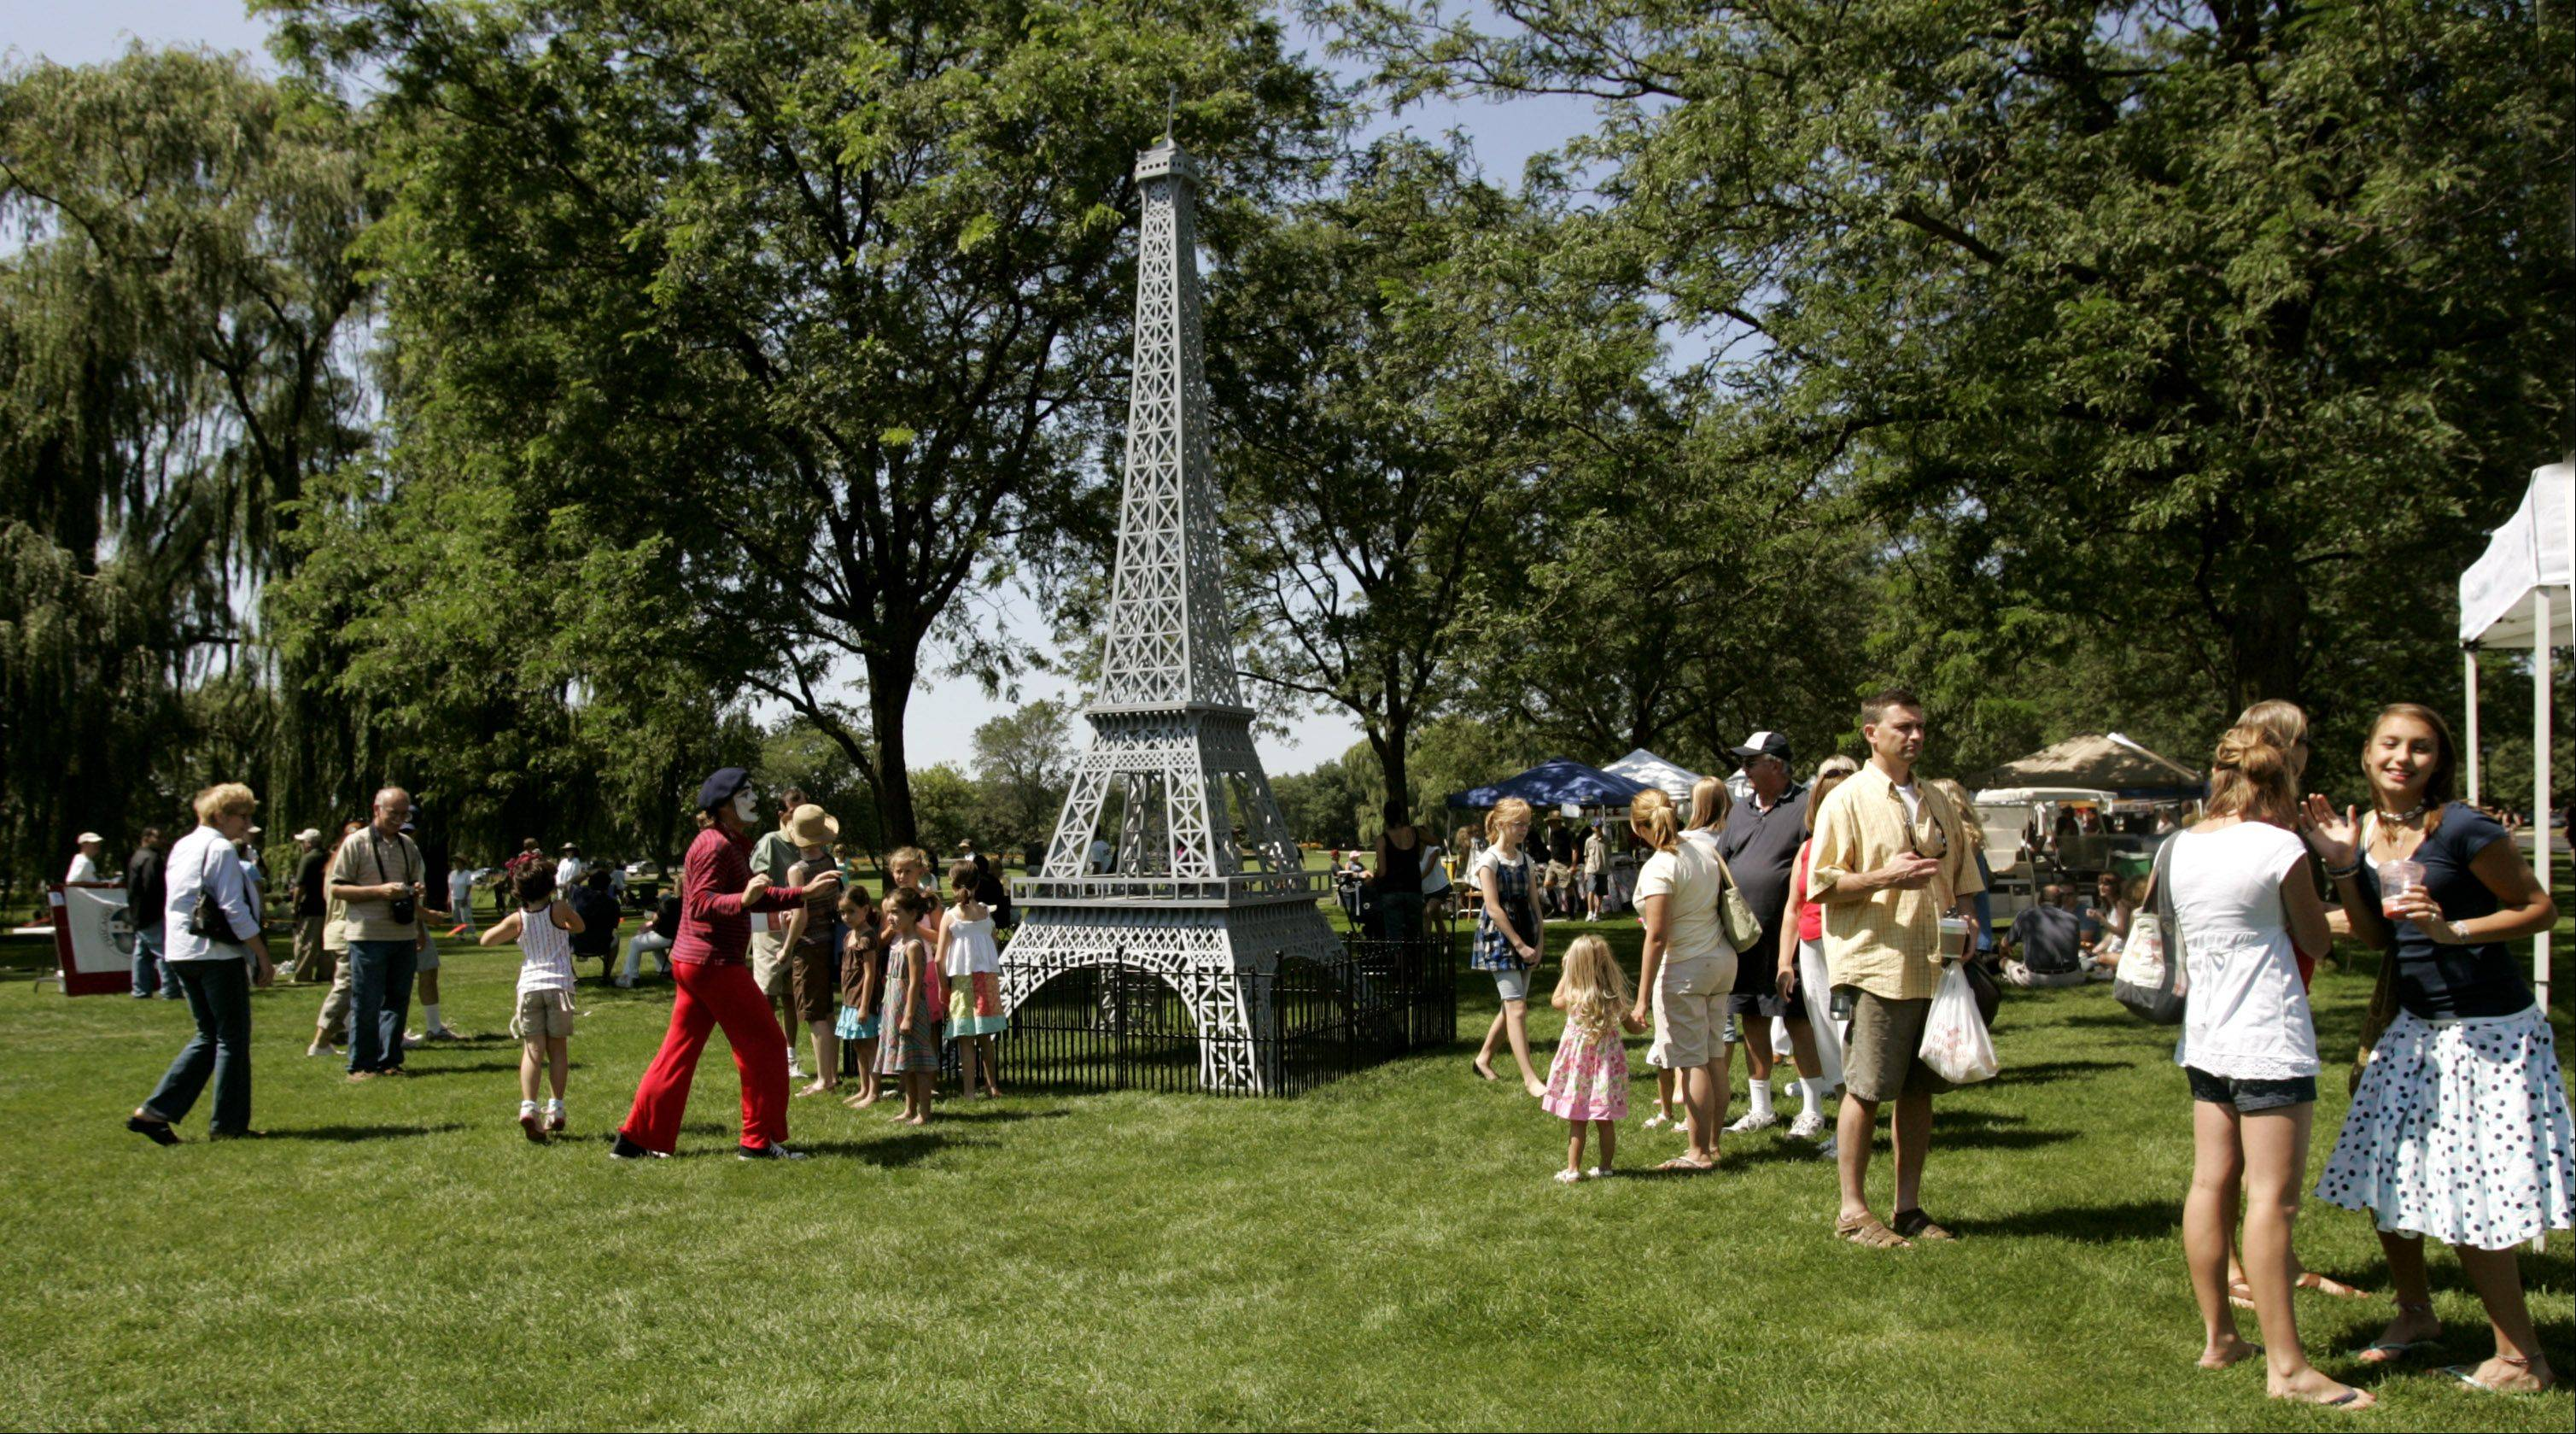 A 23-foot replica of the Eiffel Tower will help set the scene for French Connection Day next weekend at Cantigny Park.